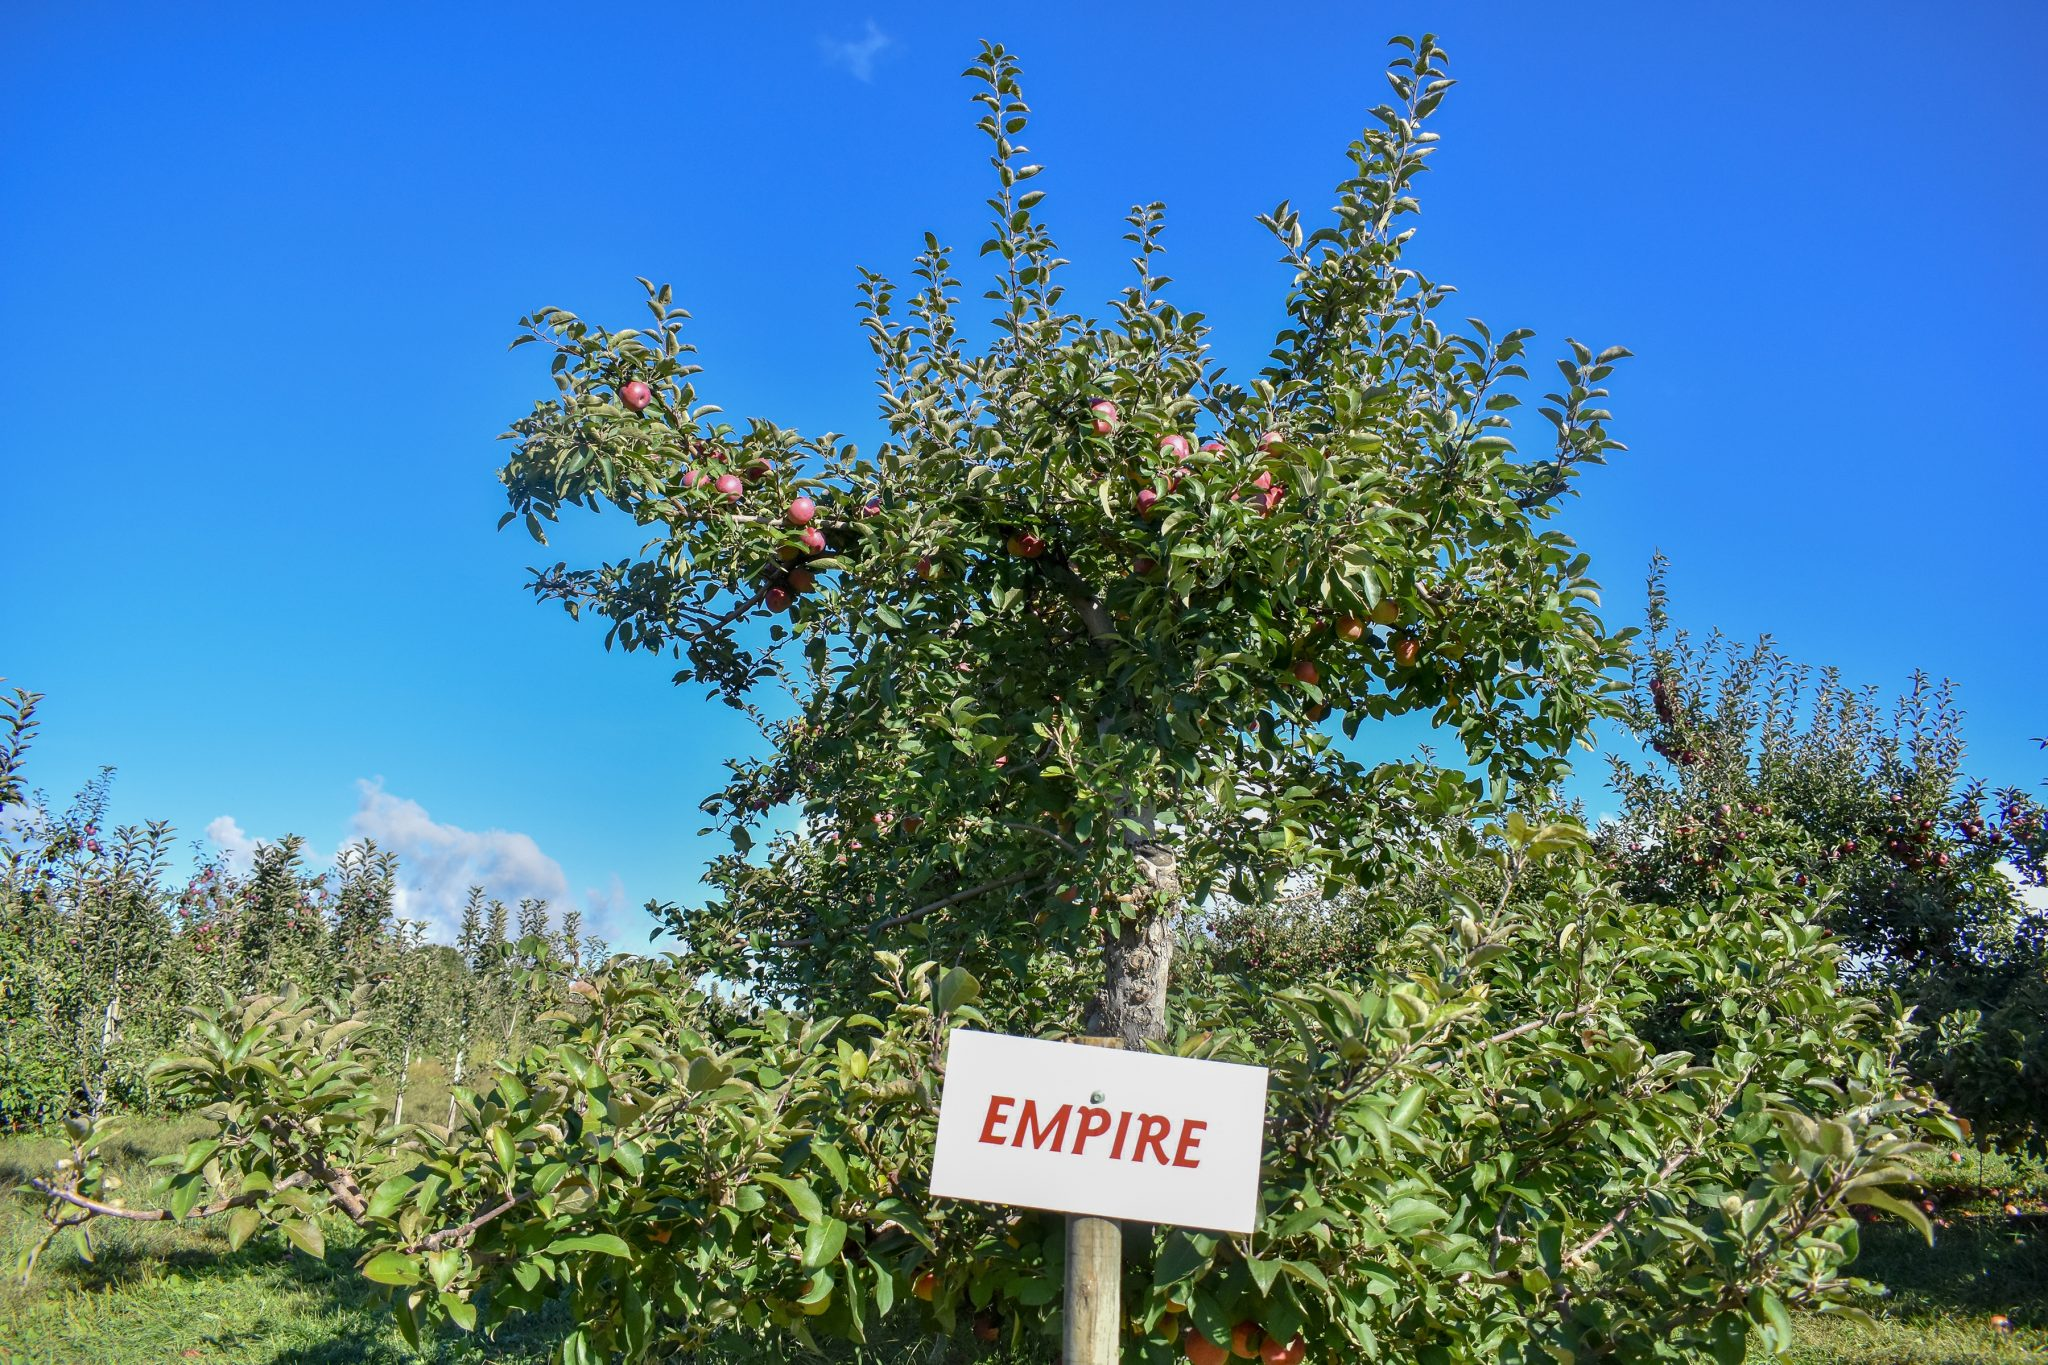 Courtland, Gala, Empire, McIntosh, Granny Smith – there are over 15 varieties available at Apple Land Station throughout the season. Photo by Laura Thorne.